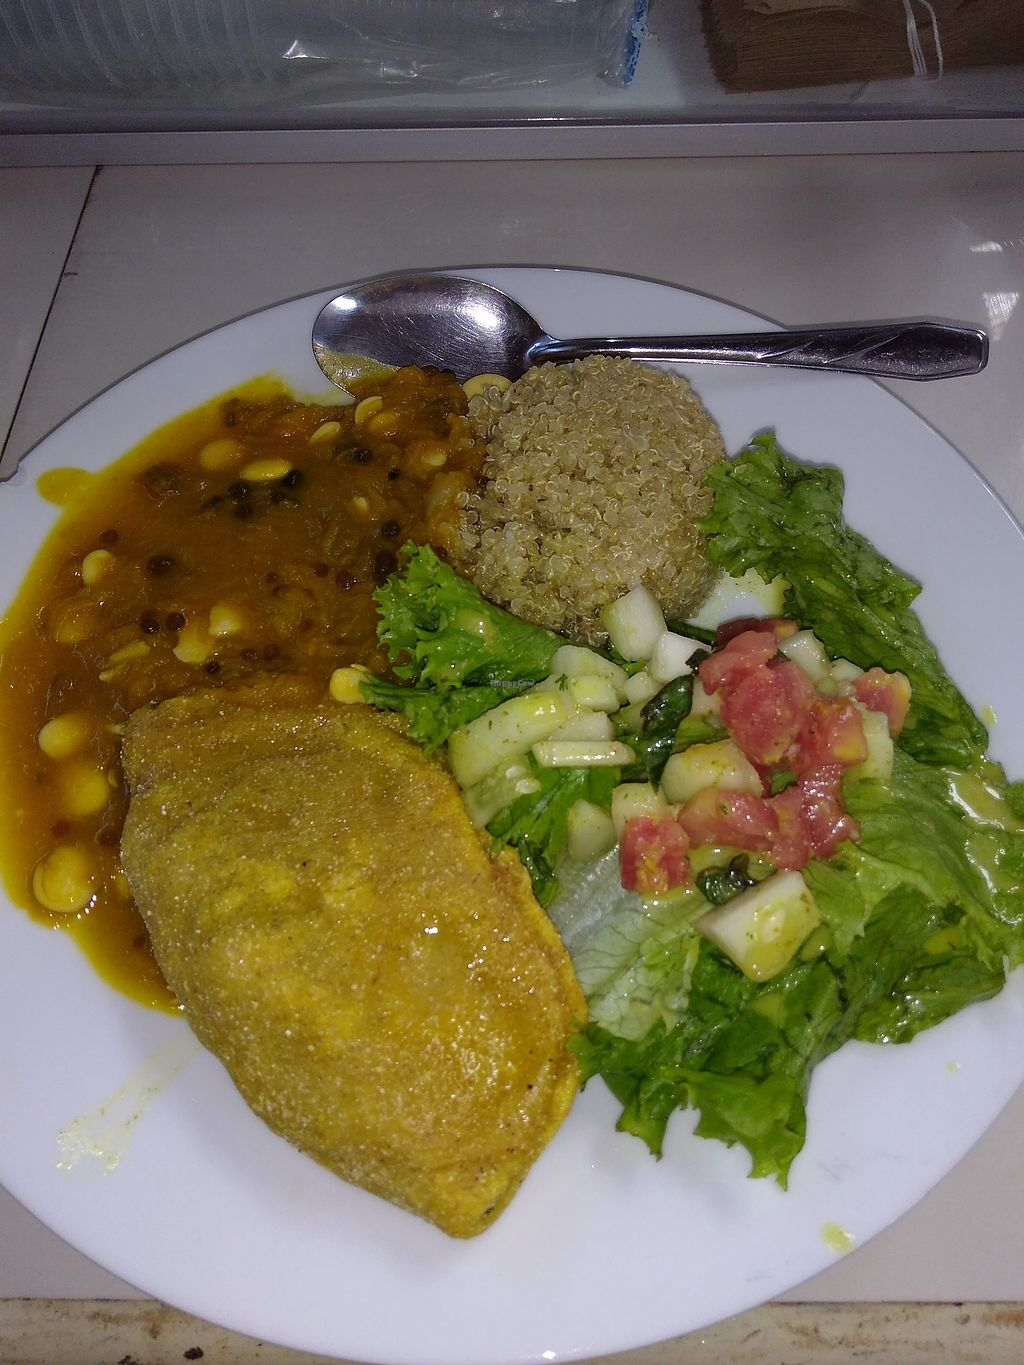 """Photo of Govinda Lila  by <a href=""""/members/profile/emzie1983"""">emzie1983</a> <br/>Set lunch main. Spinach empanada :) <br/> April 13, 2018  - <a href='/contact/abuse/image/2710/385170'>Report</a>"""